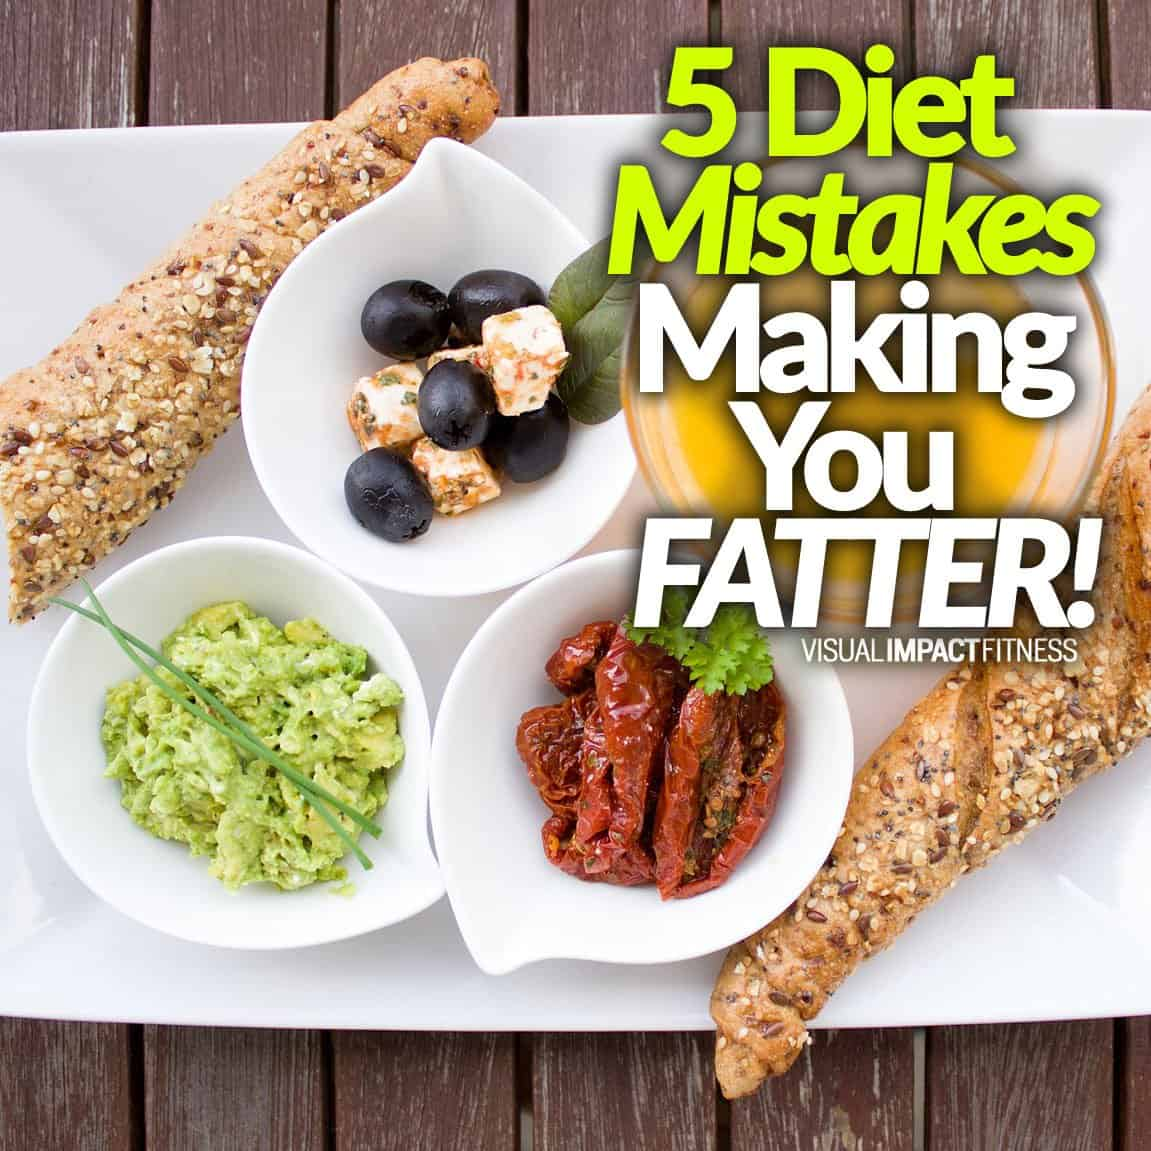 5 Diet Mistakes - Making You FATTER